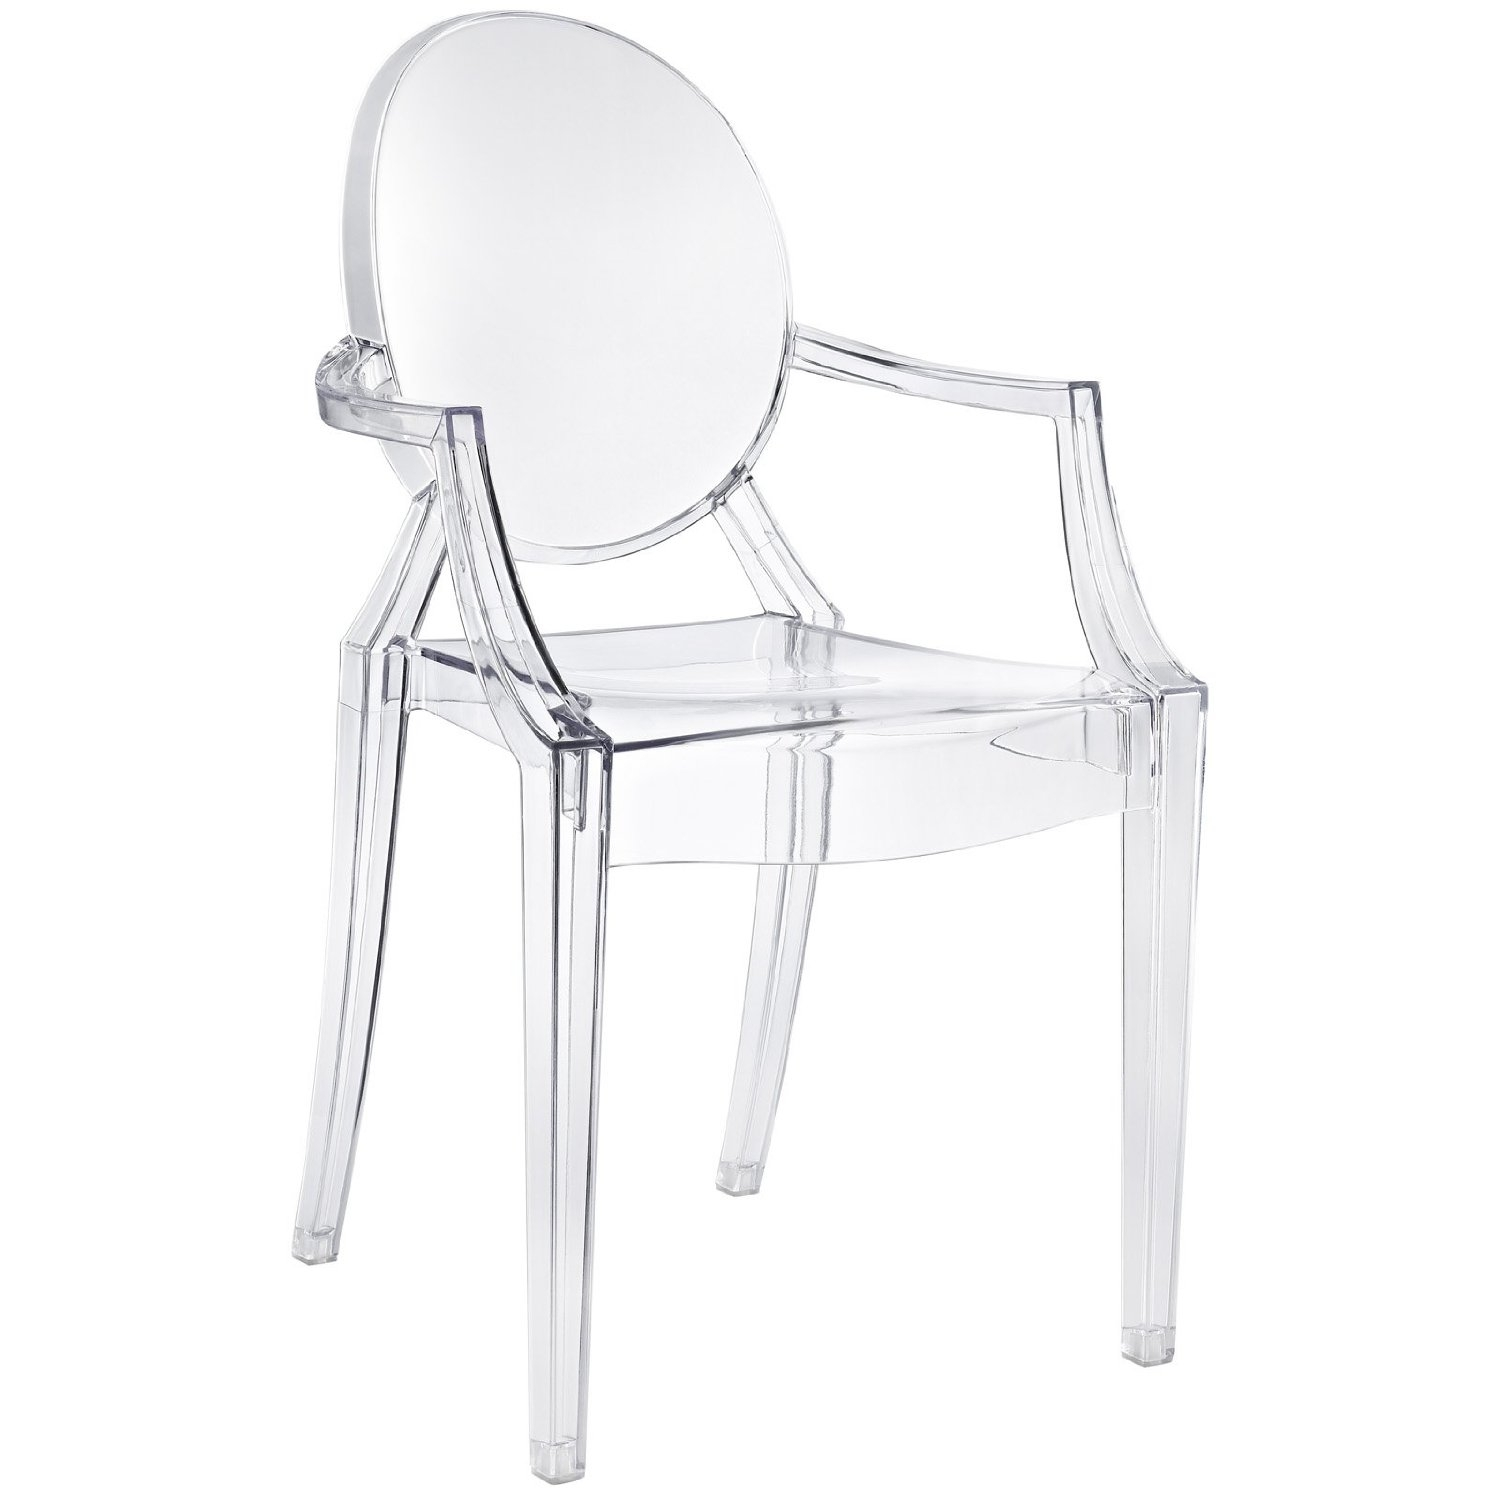 This Clear Acrylic Stacking Dining Chair - Modern Ghost Style is a comfortable transparent acrylic armchair in the Louis XV style.Representing the intersection of classic baroque style and innovative modern design, the Louis Ghost Chair is both enchanting and comfortable.The Louis Ghost Chair design was introduced in 2002, and has been recognized by many for its unique look and surprisingly indestructible design.The Louis Ghost Chair is stable and durable, shock, scratch and weather resistant.The Ghost chair's fluid, serene design allows it to be used for residential or commercial. Made of transparent acrylics, the chair is sturdy and durable even as it displays a delicate, ethereal appearance. This versatile side chair is suitable for indoor and outdoor use.